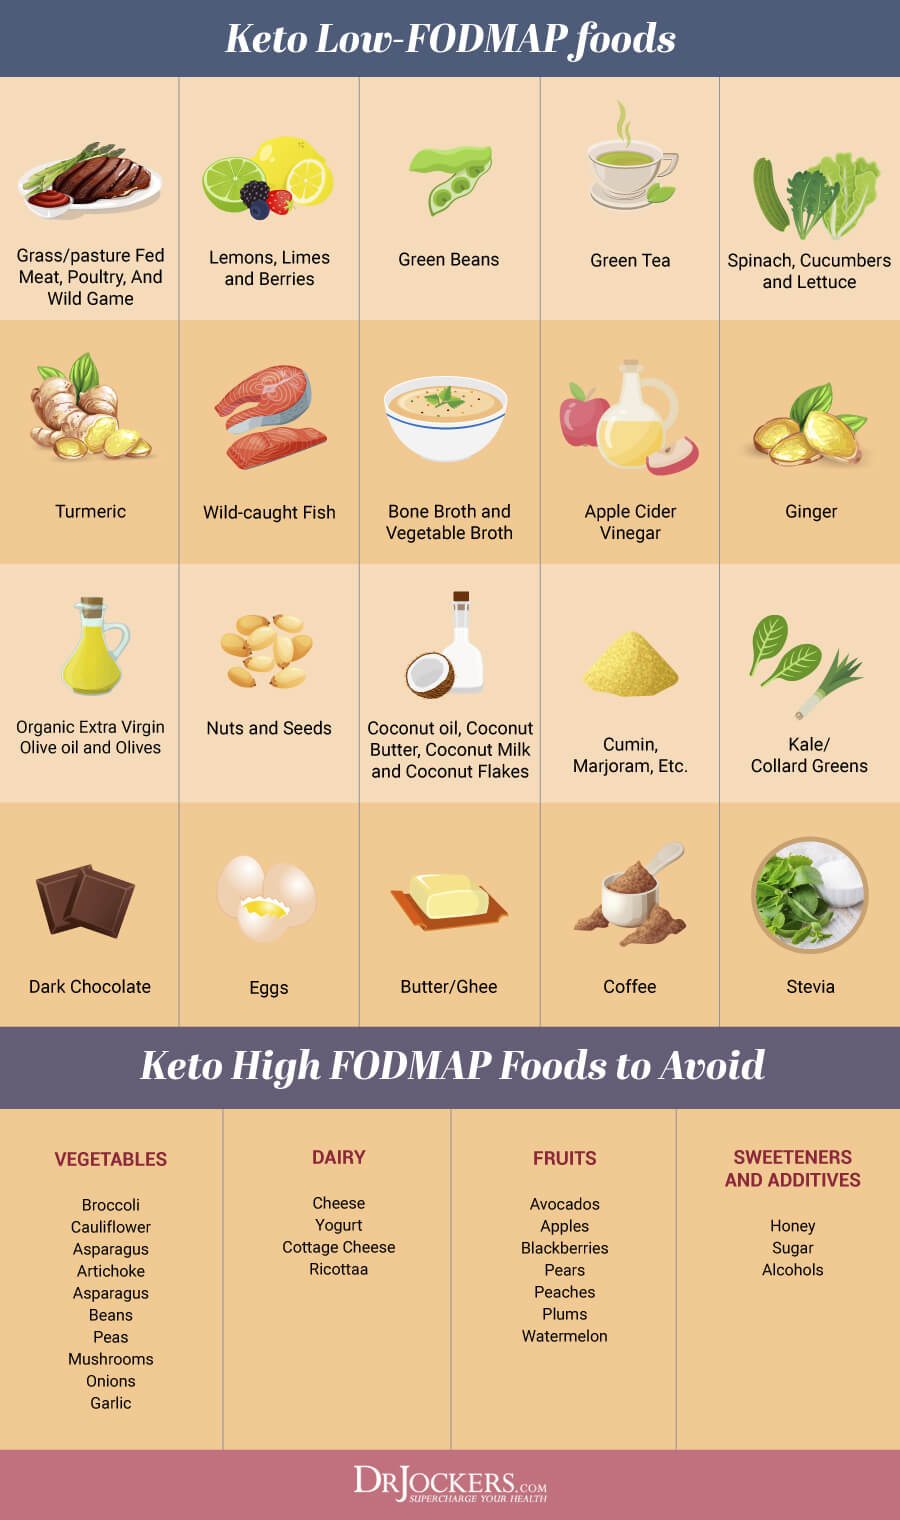 FODMAPS, Low FODMAPs Keto Diet for Digestive Health